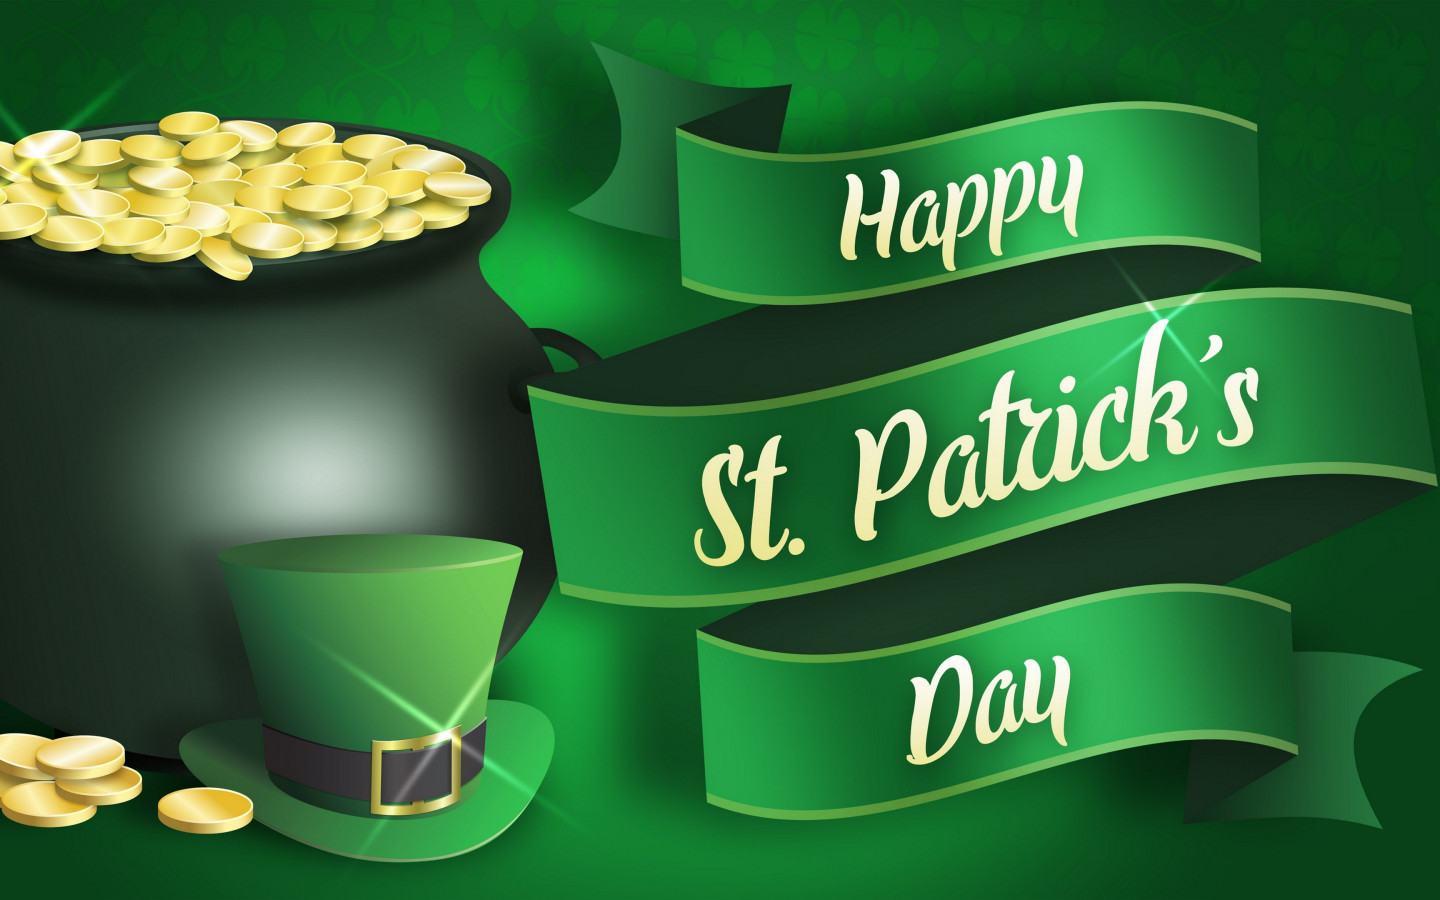 Happy Saint Patrick's Day wallpaper 1440x900